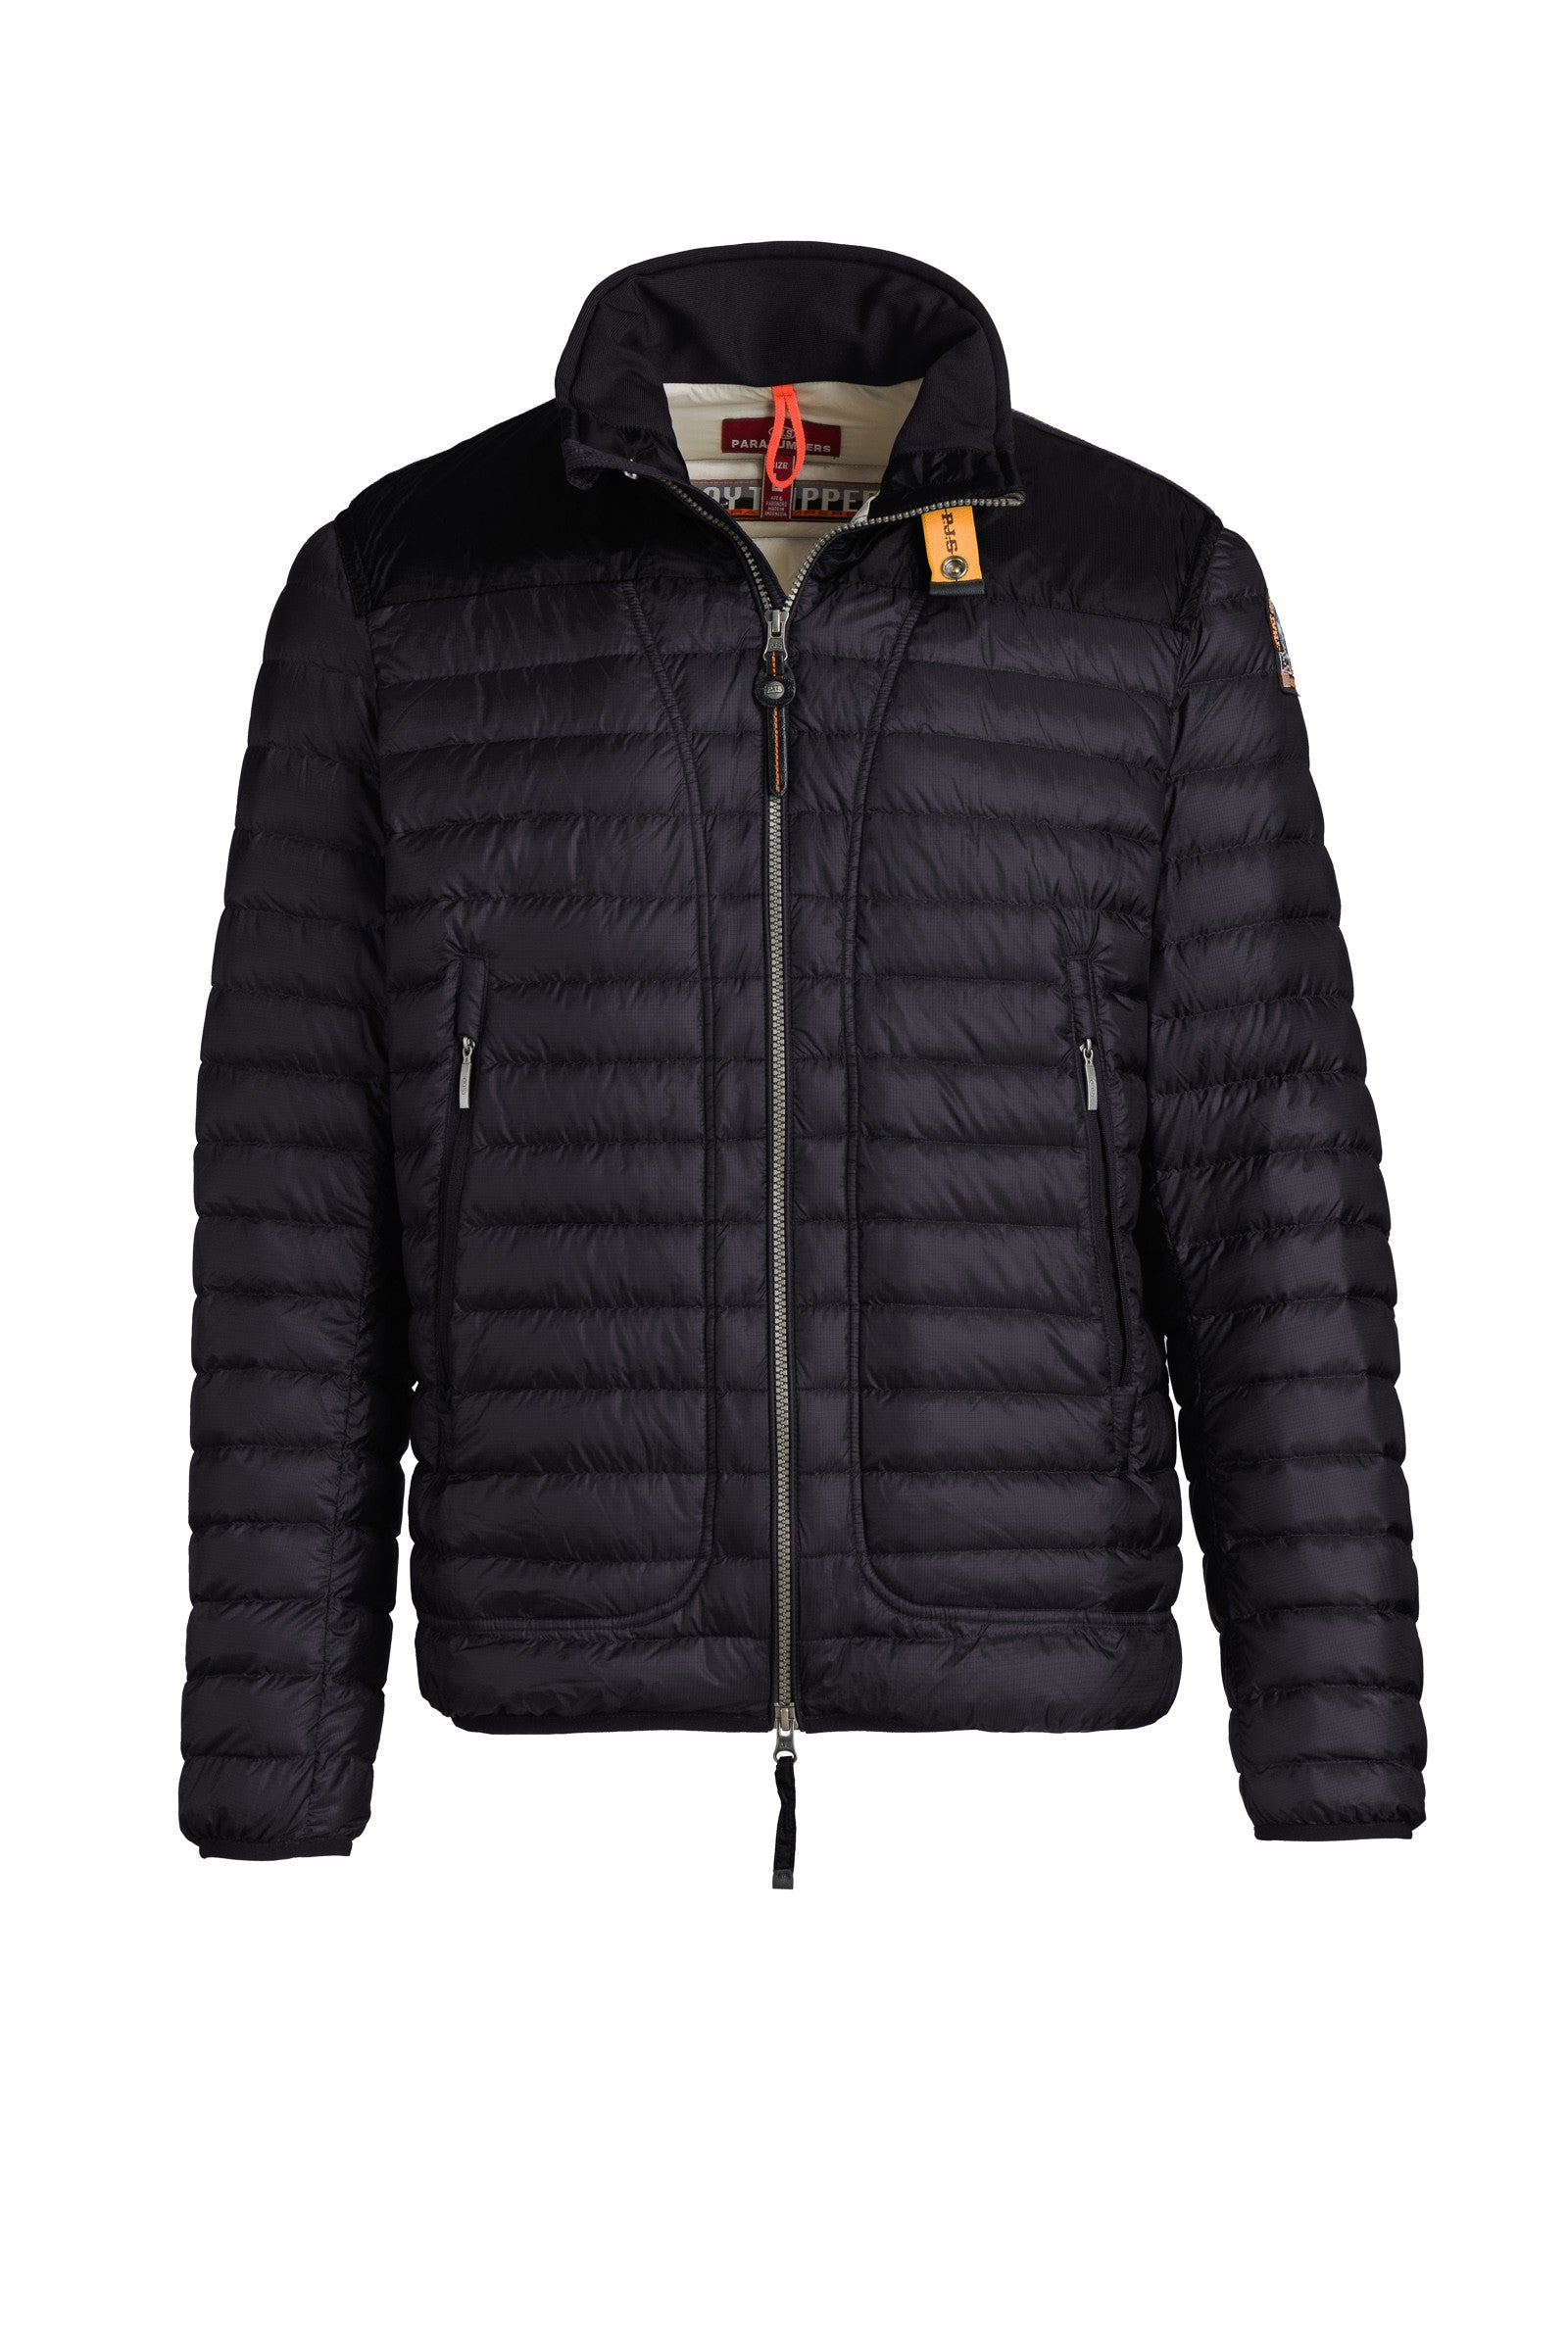 parajumpers anchorage jacket